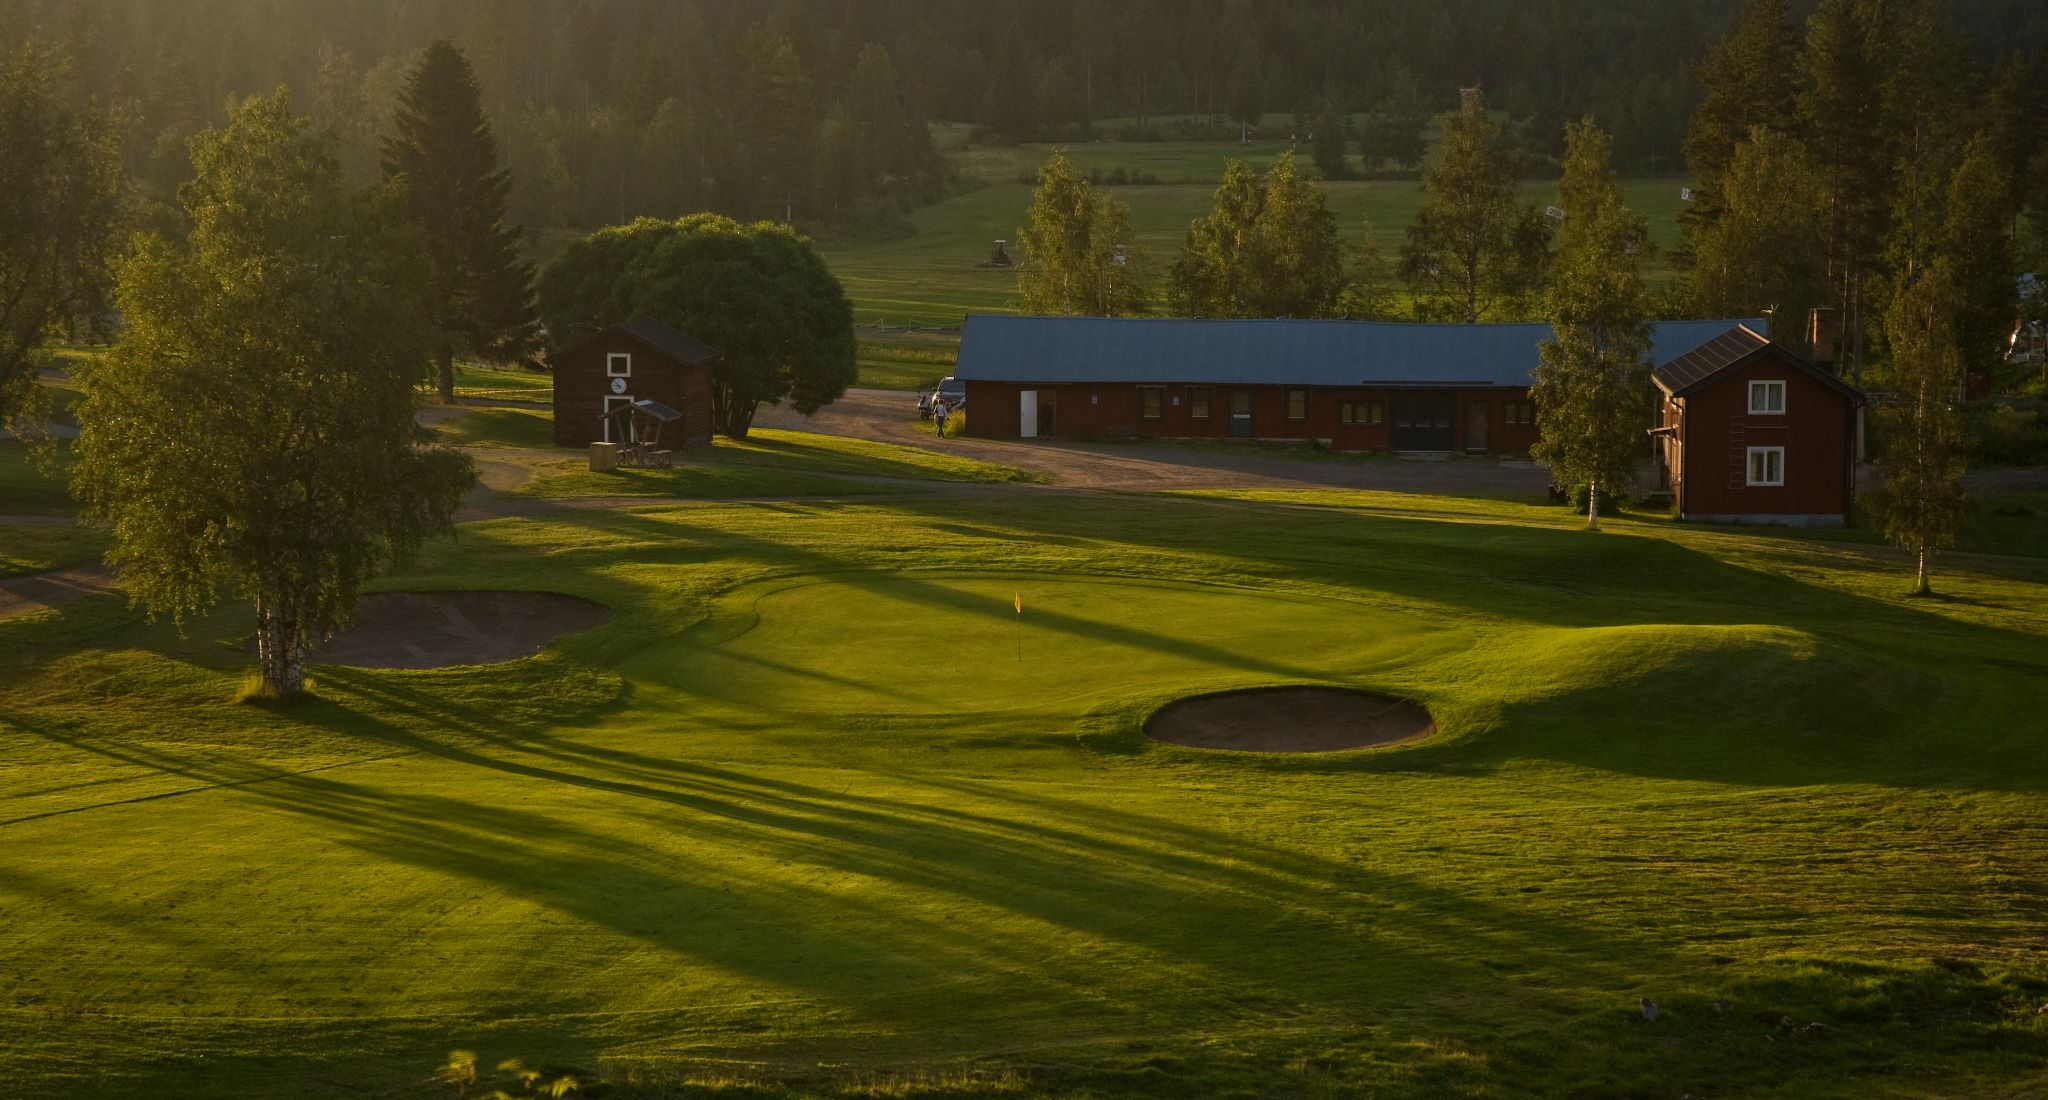 Overview of golf course named Skelleftea Golfklubb